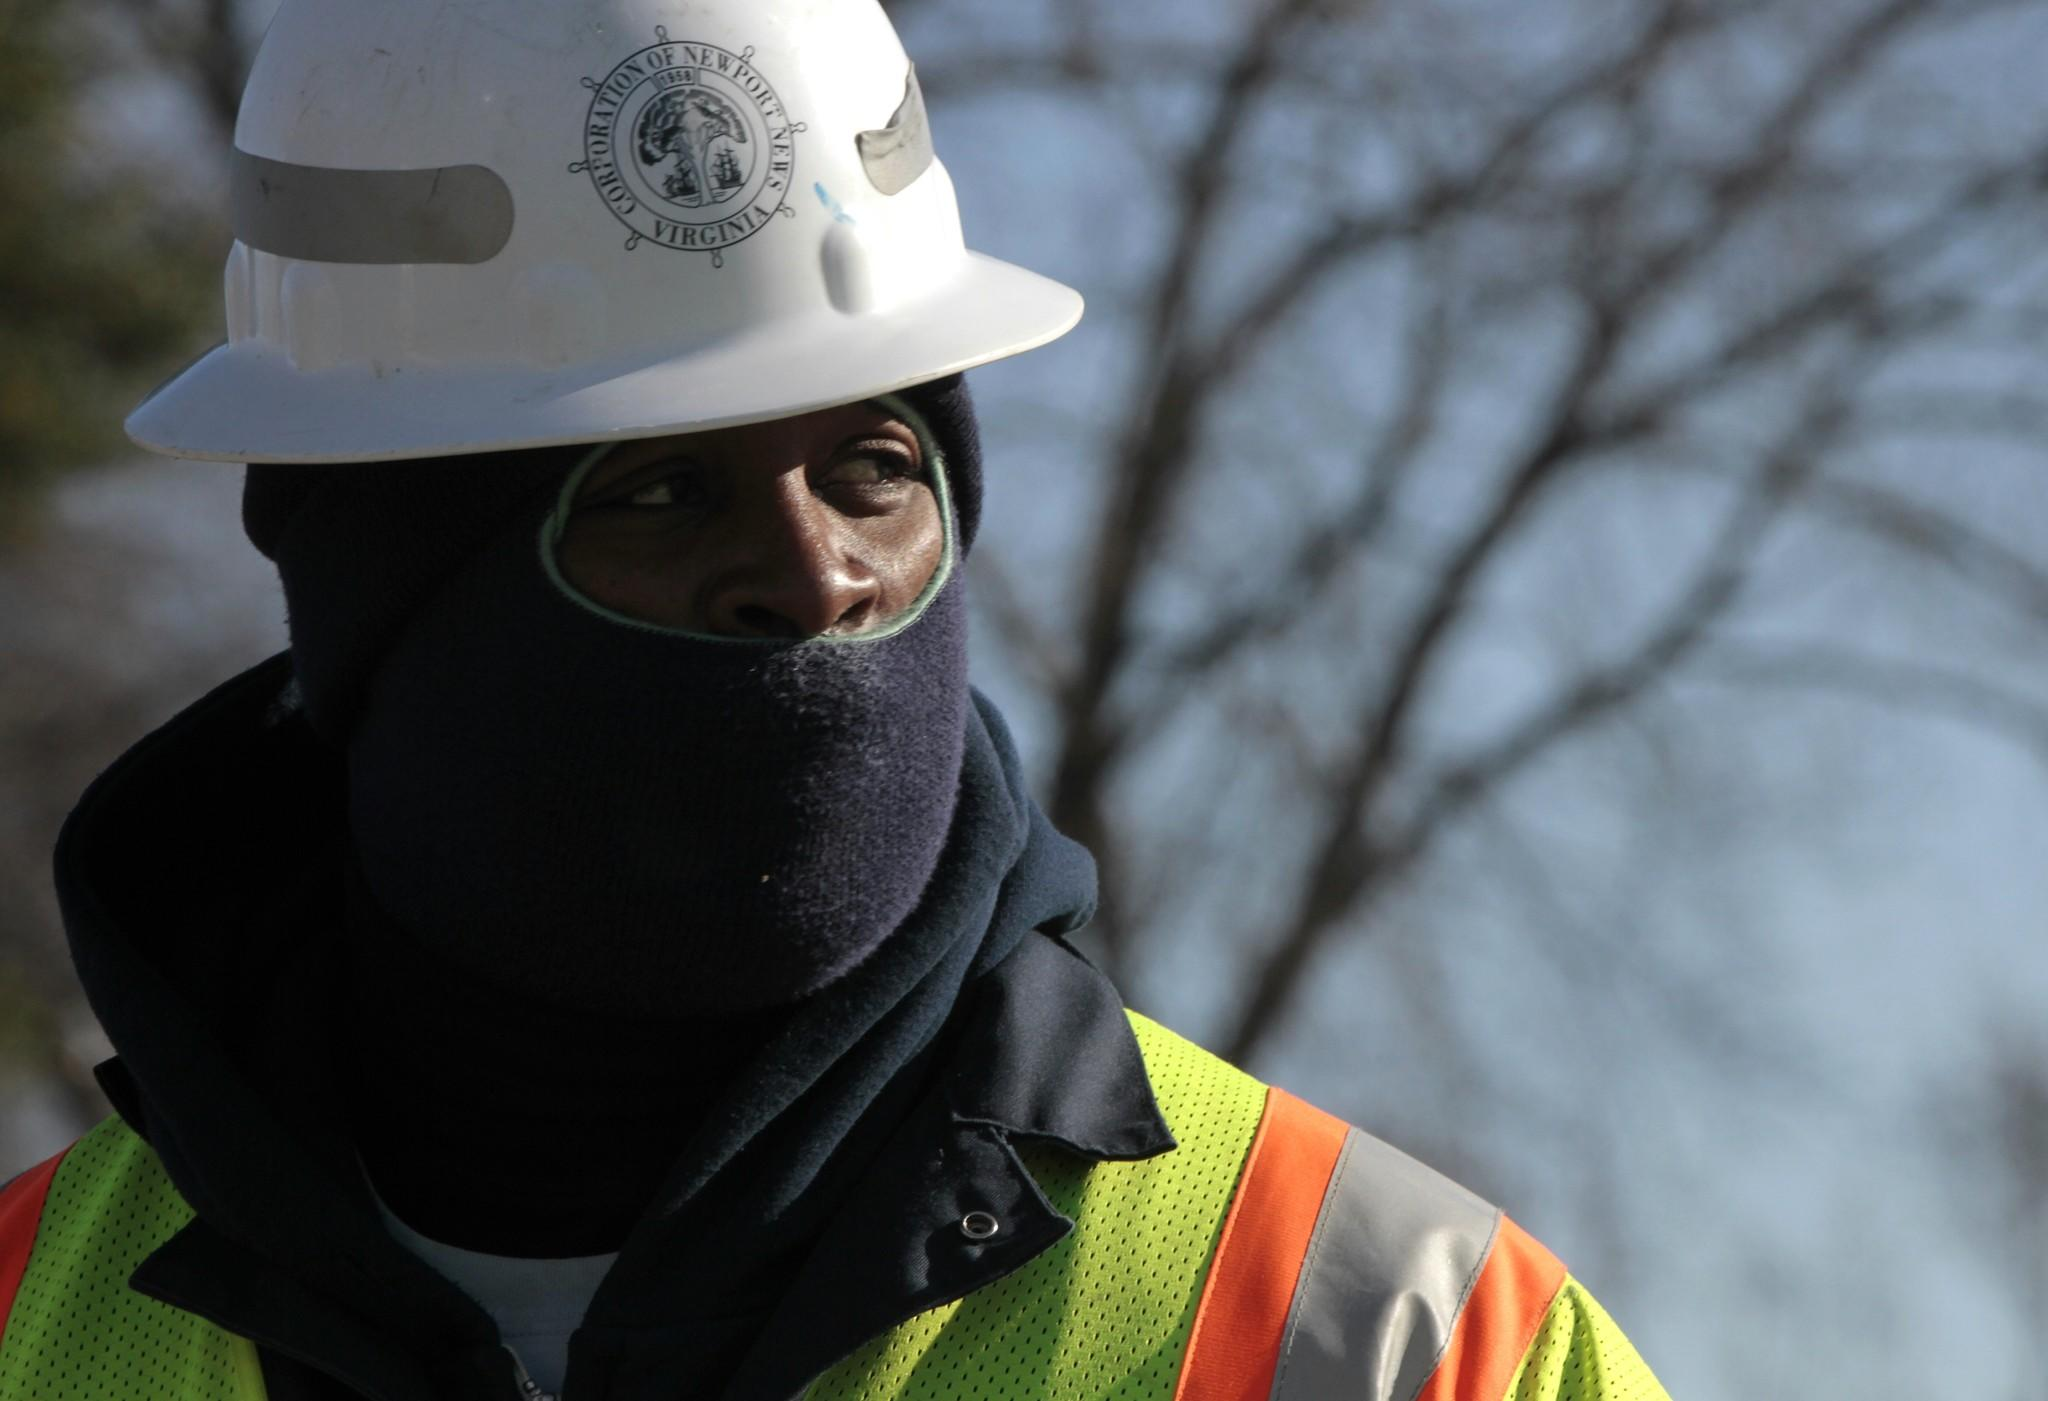 Ronald Boone covers his face against the cold while repairing a water main leak with Newport News Waterworks near the intersection of Nettles Drive and Winterhaven Drive on Tuesday morning.